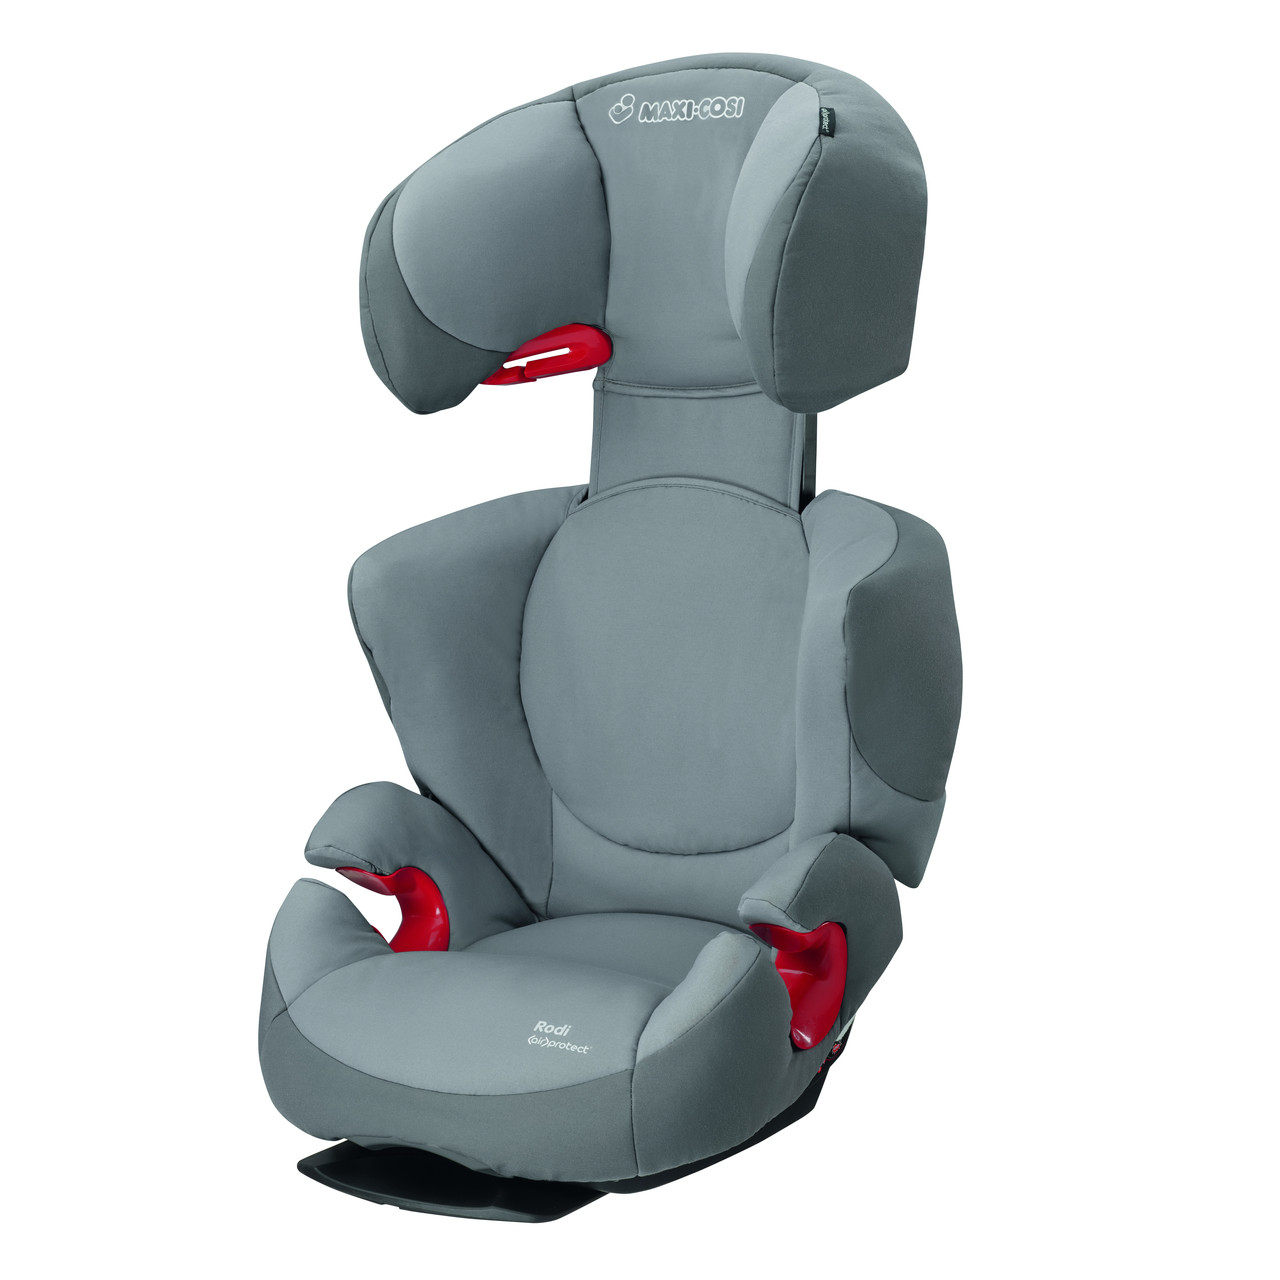 Автокресло Maxi Cosi Rodi AP 15-36 кг (75118960) Concrete Grey (серый)